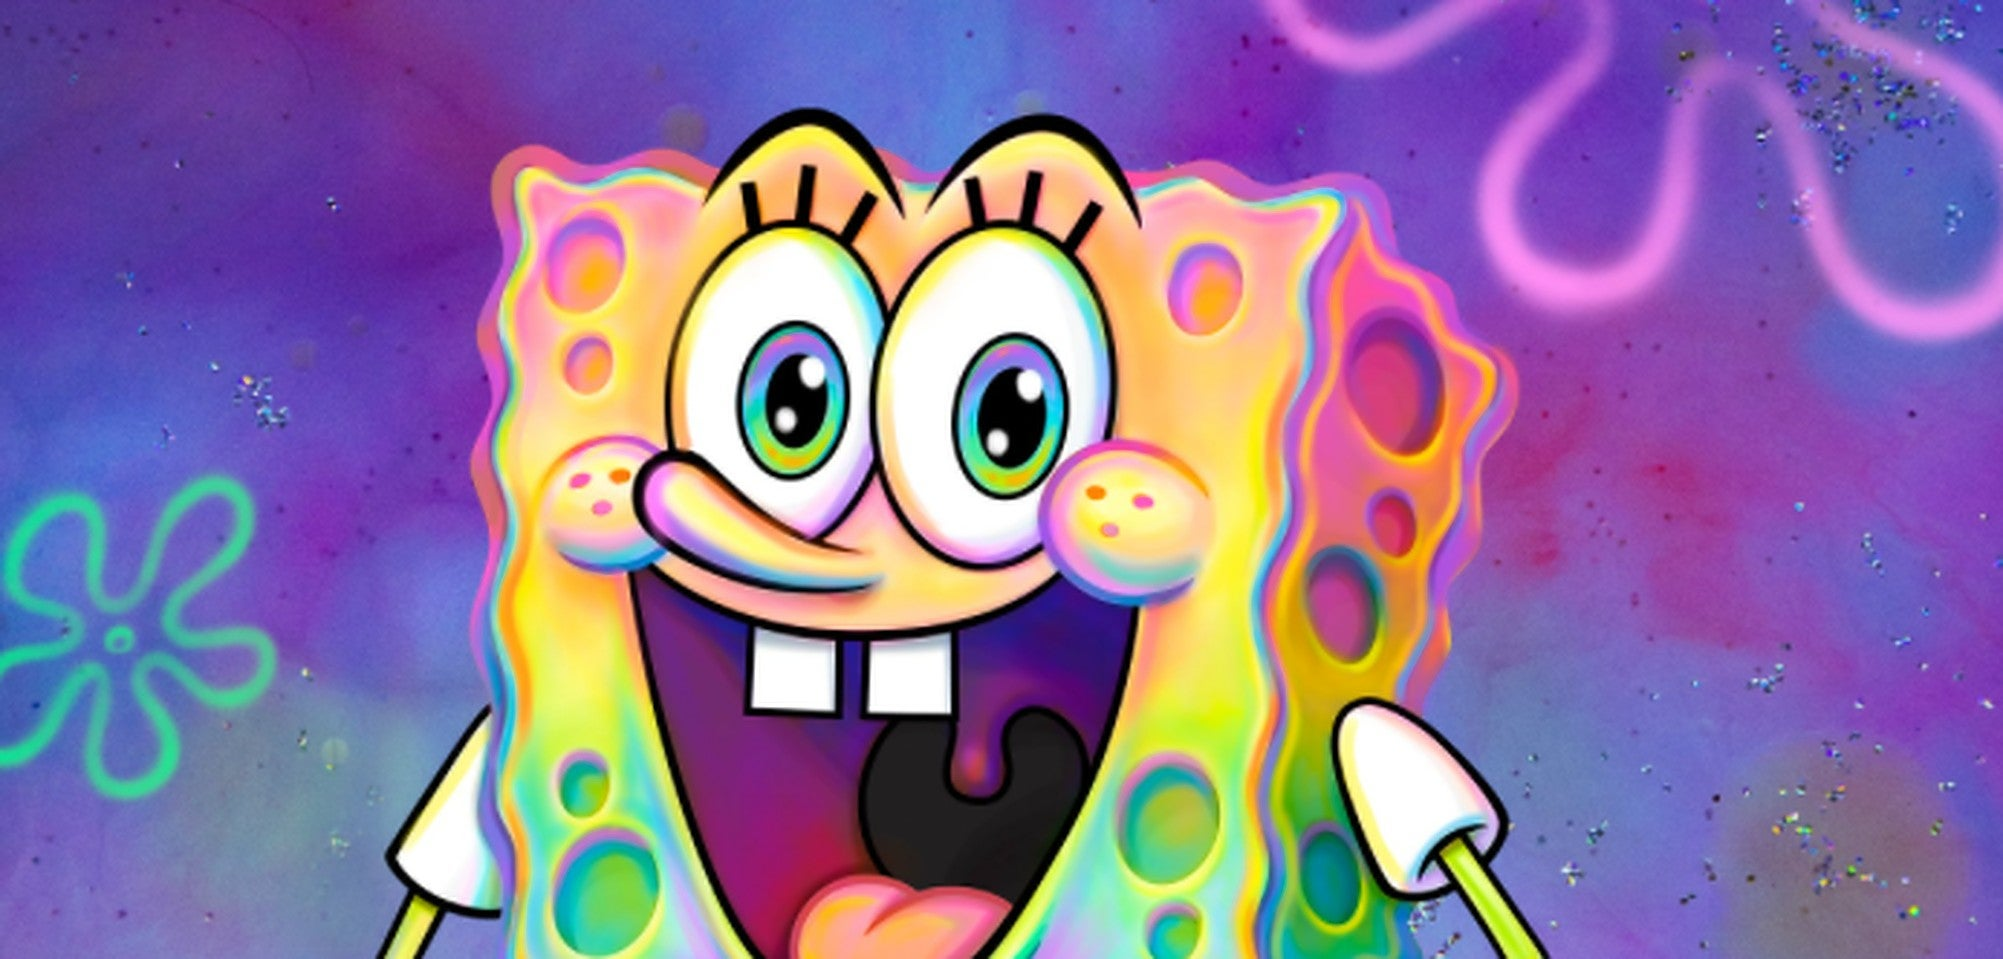 SpongeBob Announced as a Member of the LGBTQ Community During Pride Month